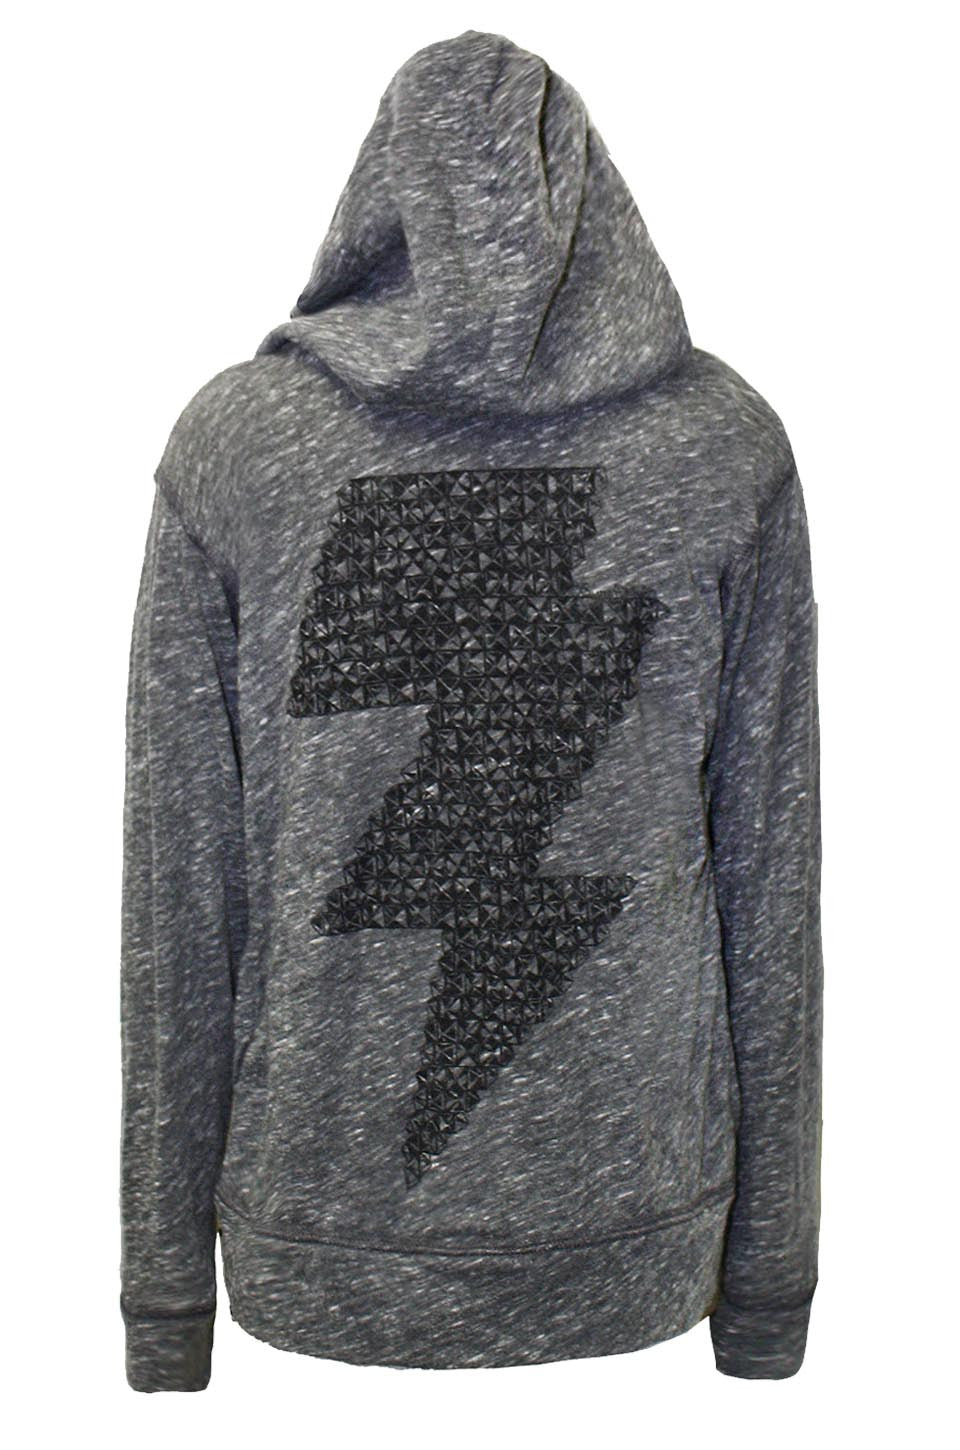 Gumby Stud Lightning Bolt Jersey Zip Up Hoodie - Lauren Moshi - 4